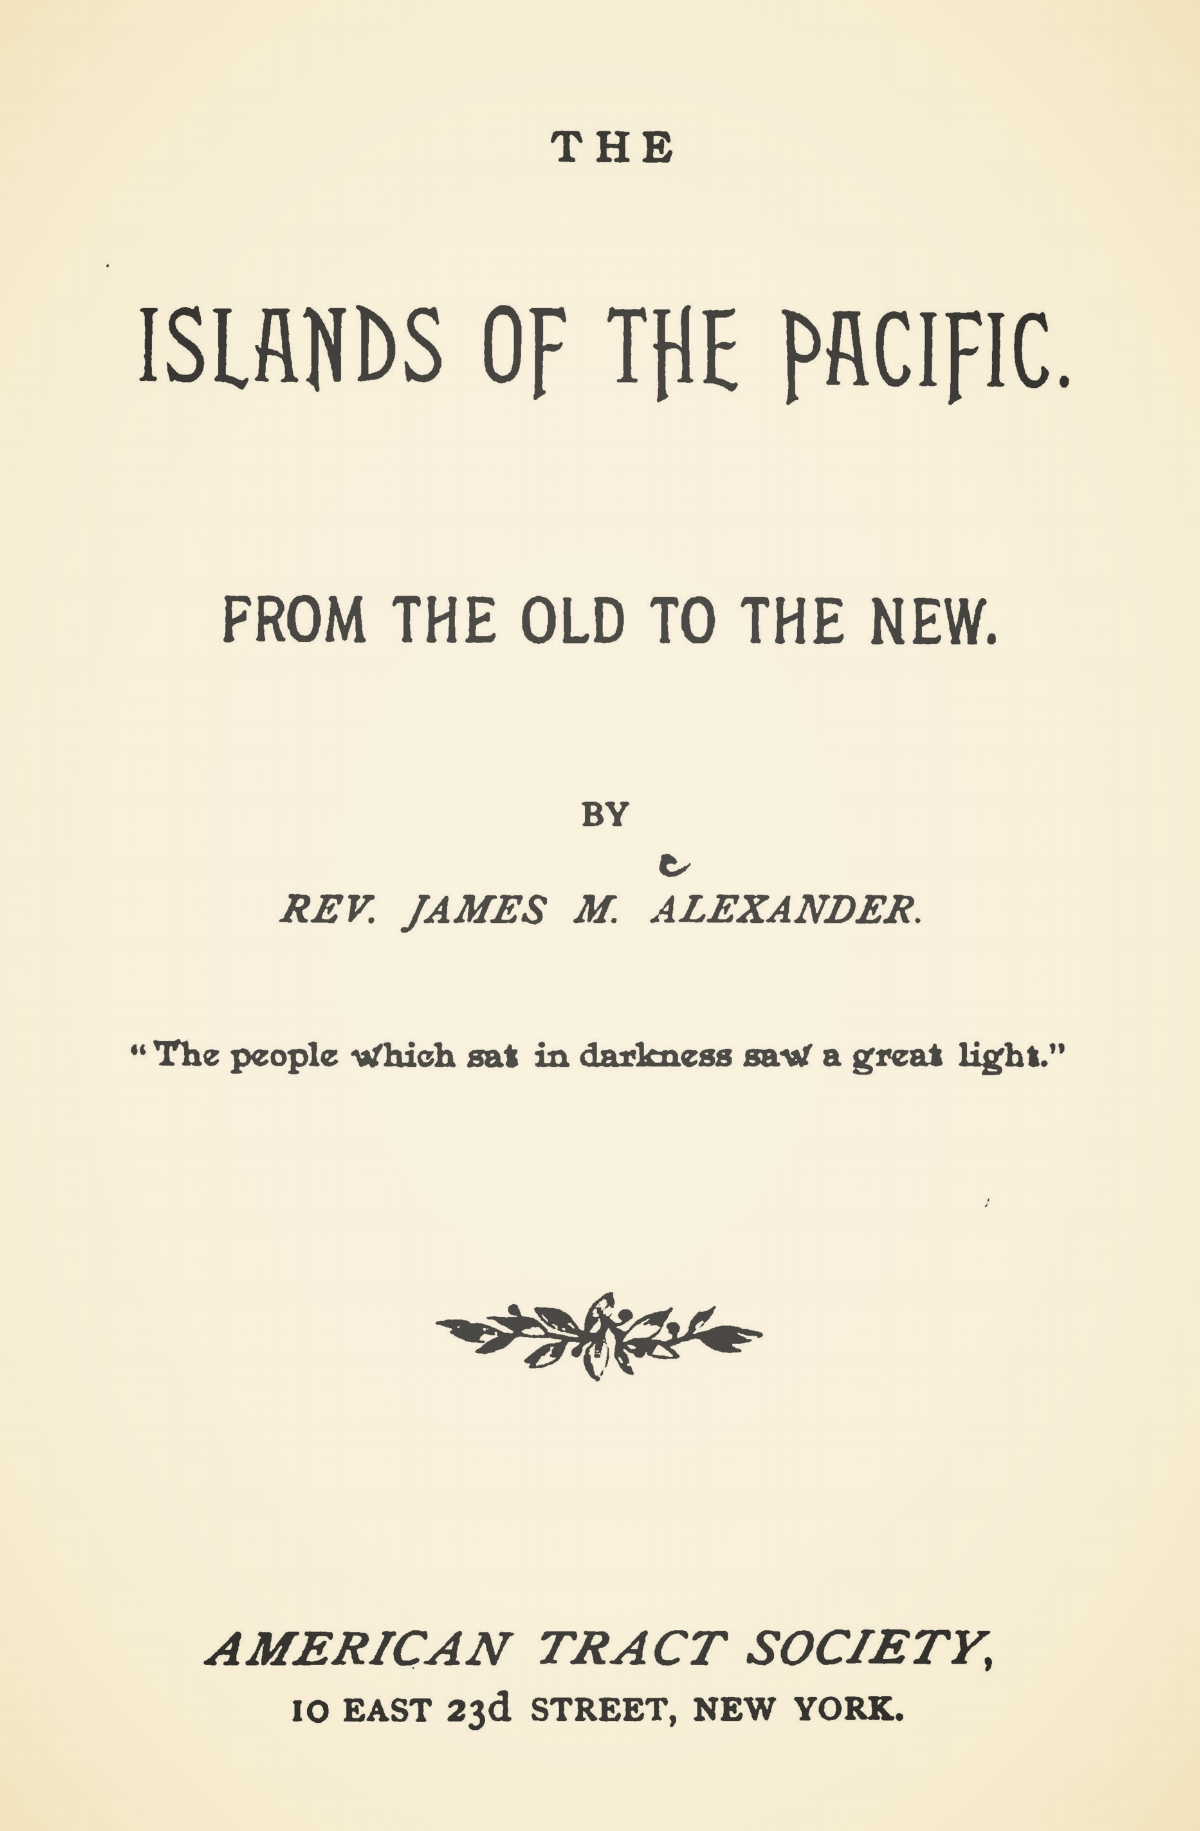 Alexander, James McKinney, The Islands of the Pacific Title Page.jpg